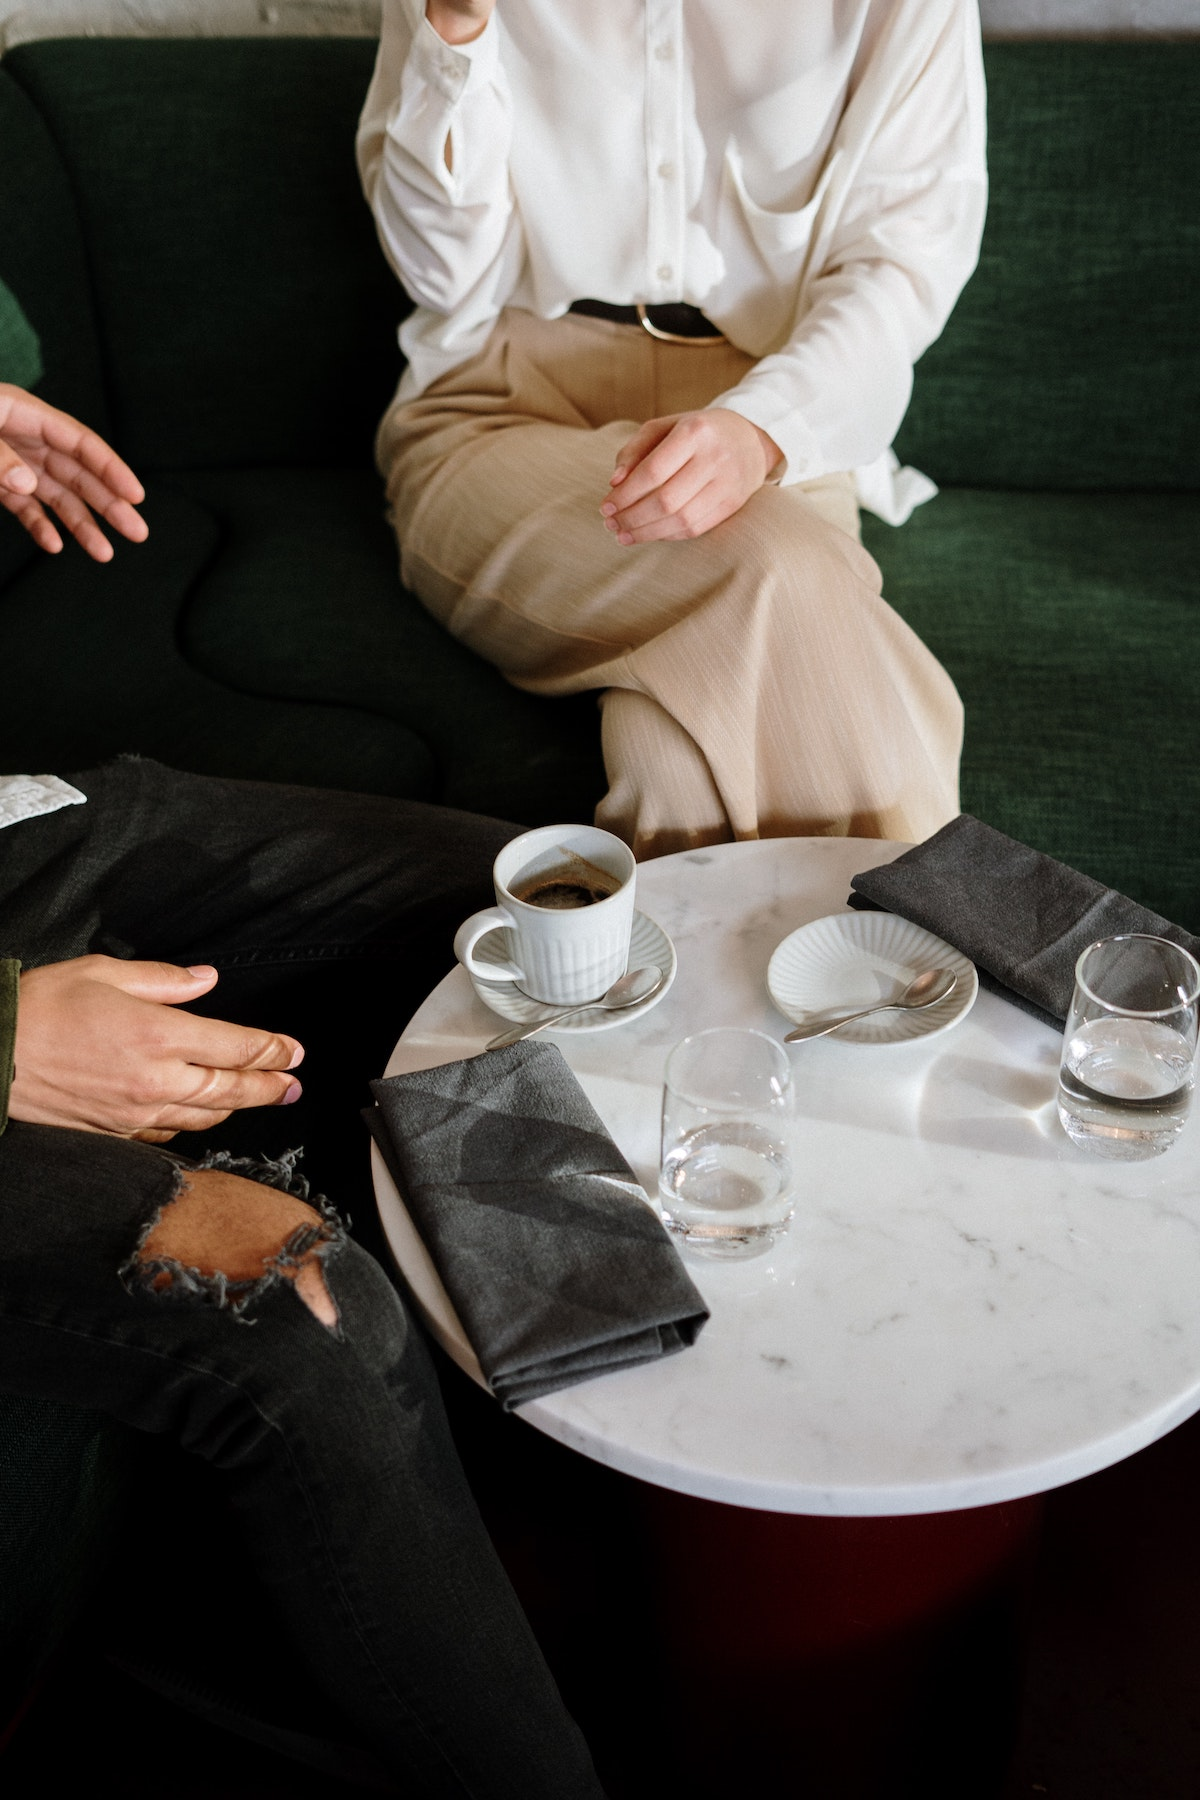 10 Foolproof Questions for Great Conversations how to talk to anyone How To Talk To Anyone - Tricks For Big Success in Relationships womenontopp.com women on Topp